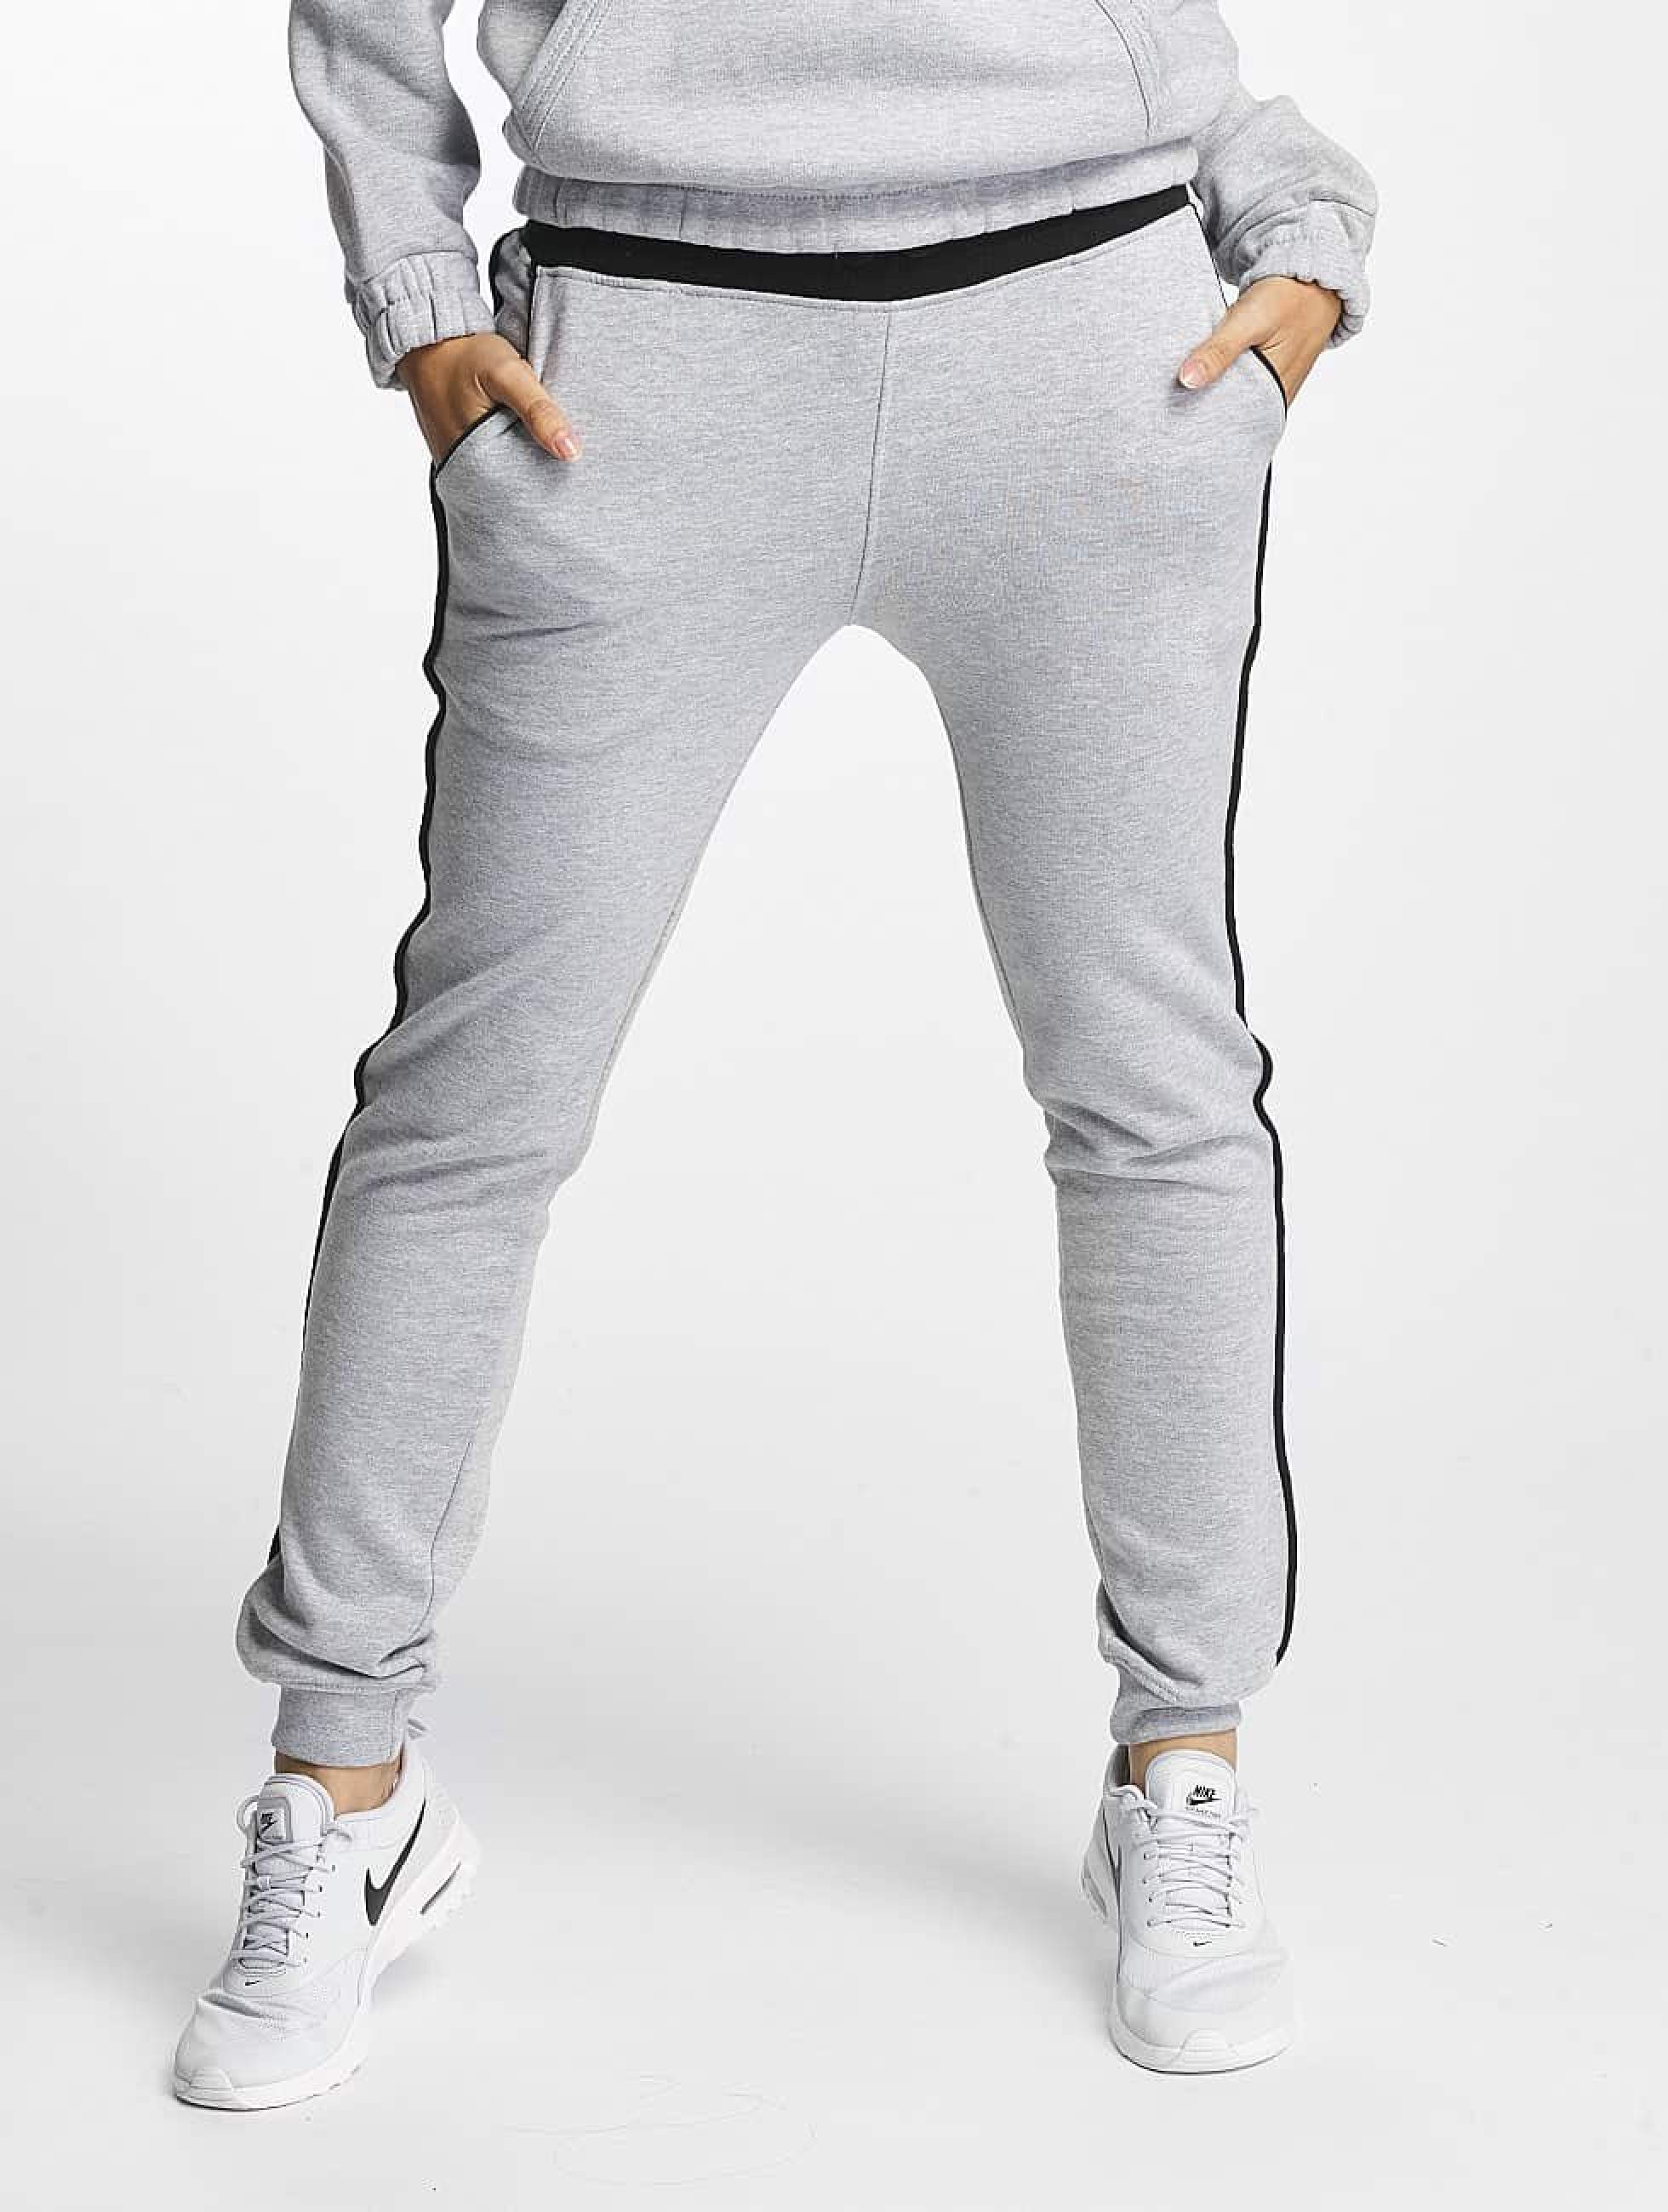 Cyprime / Sweat Pant Meitnerium in grey S